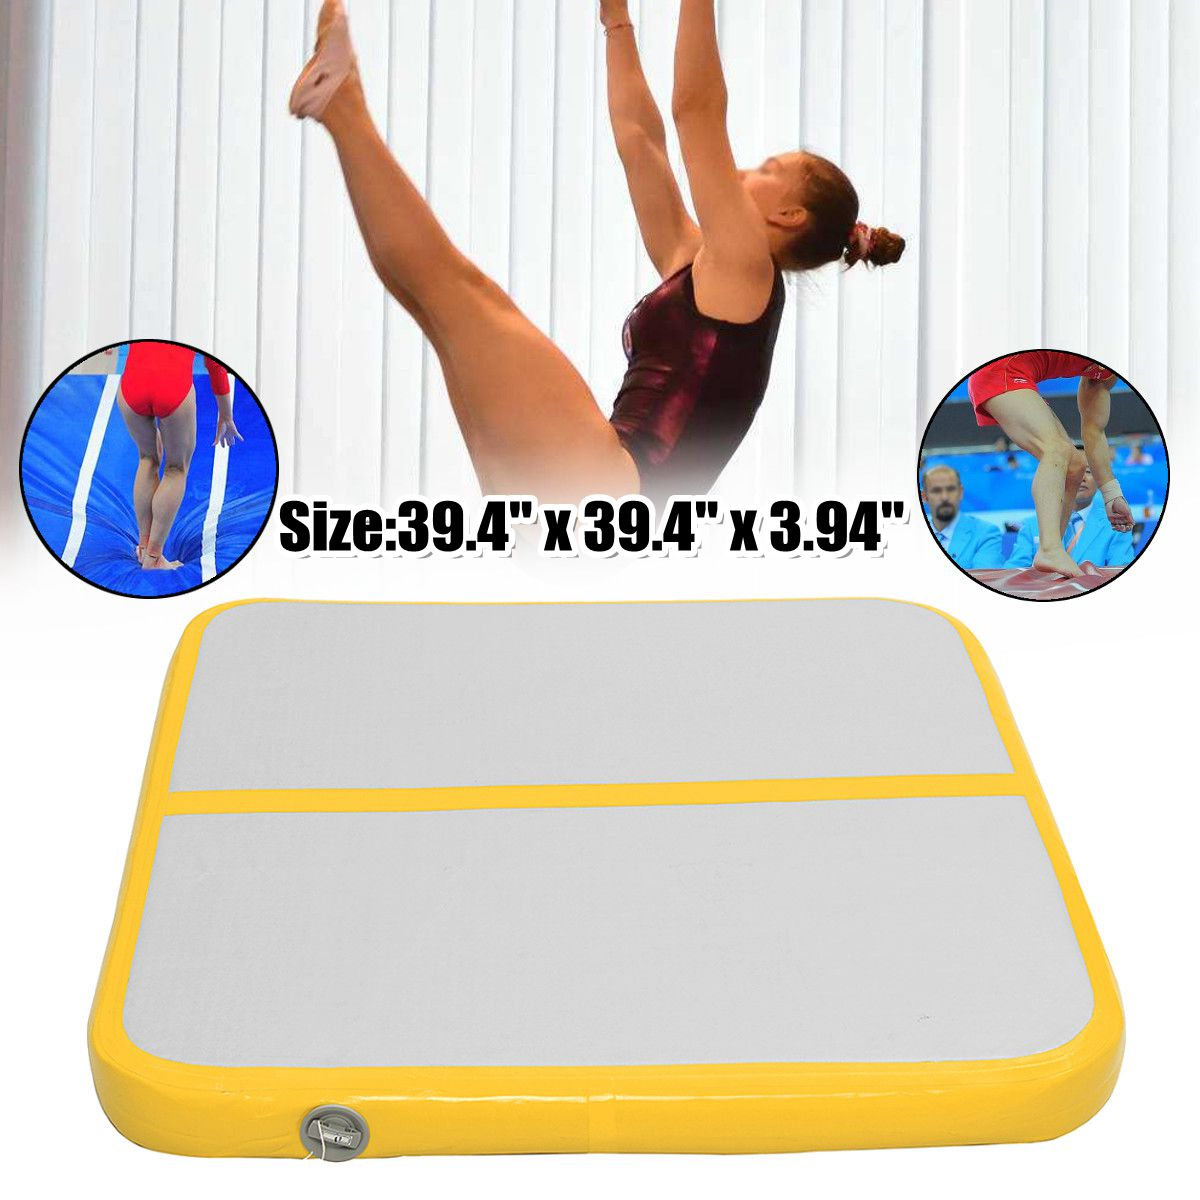 100*100*10m Air Track Floor Home Inflatable Gymnastics Tumbling Mat GYM for Kids high quality 4 1 0 2m inflatable air track gymnastics air track trampoline for water games